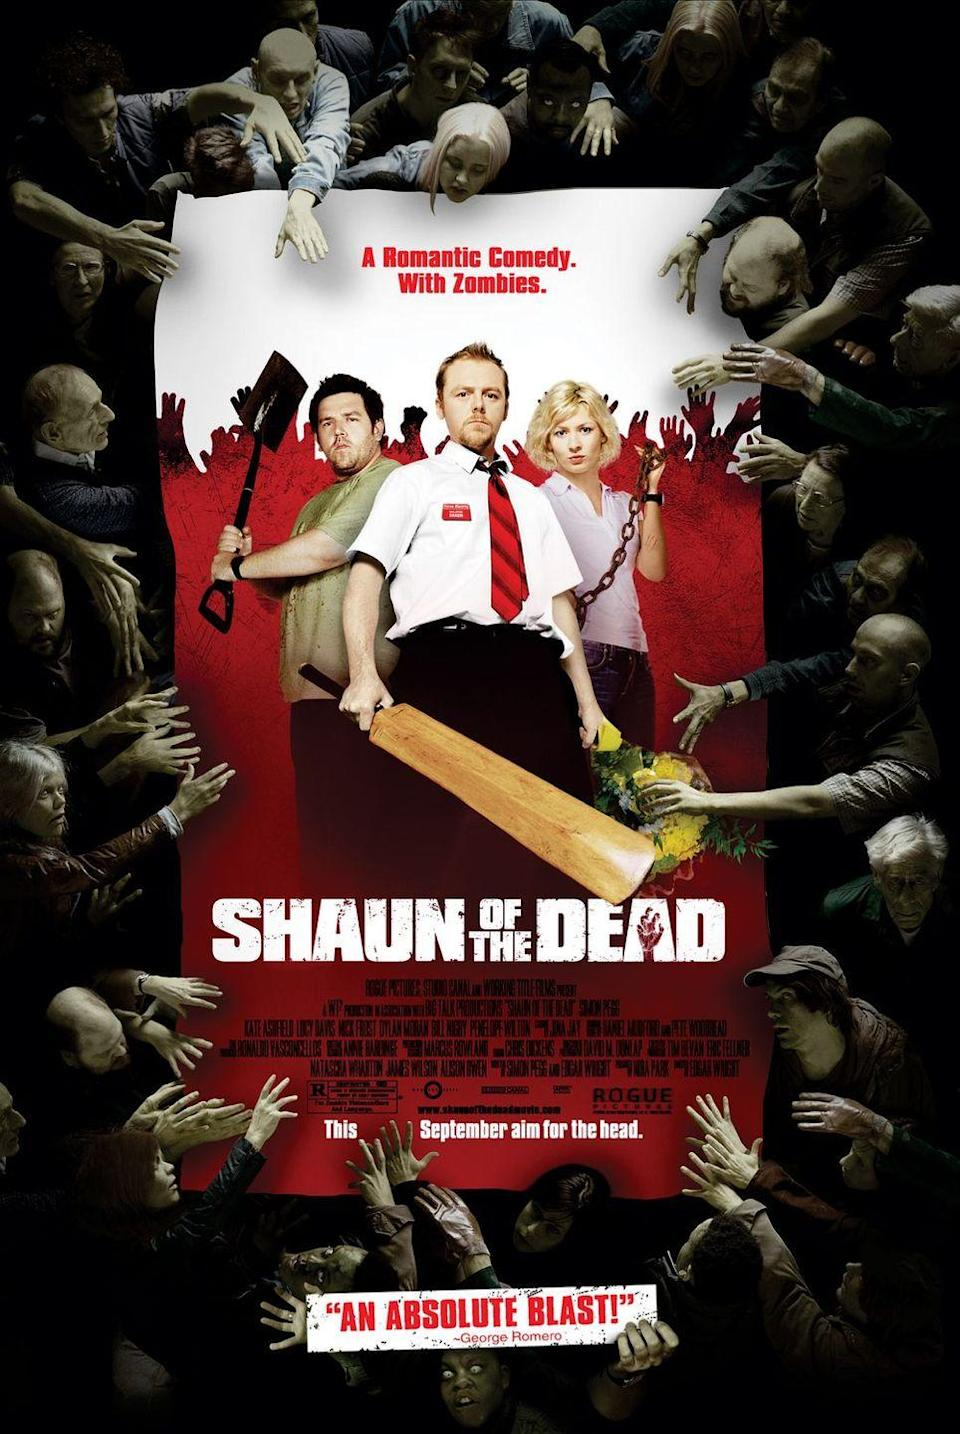 """<p>Meet your new favorite movie genre, the """"zom-rom-com""""! Edgar Wright's witty horror-comedy flick — which follows the titular Shaun (Simon Pegg) during a zombie outbreak in London — combines the best laughs (and a touch of romance) together with some brilliant zombie gore. </p><p><a class=""""link rapid-noclick-resp"""" href=""""https://www.amazon.com/Shaun-Dead-Simon-Pegg/dp/B0018OFN4U?tag=syn-yahoo-20&ascsubtag=%5Bartid%7C10055.g.33546030%5Bsrc%7Cyahoo-us"""" rel=""""nofollow noopener"""" target=""""_blank"""" data-ylk=""""slk:WATCH ON AMAZON"""">WATCH ON AMAZON</a></p>"""